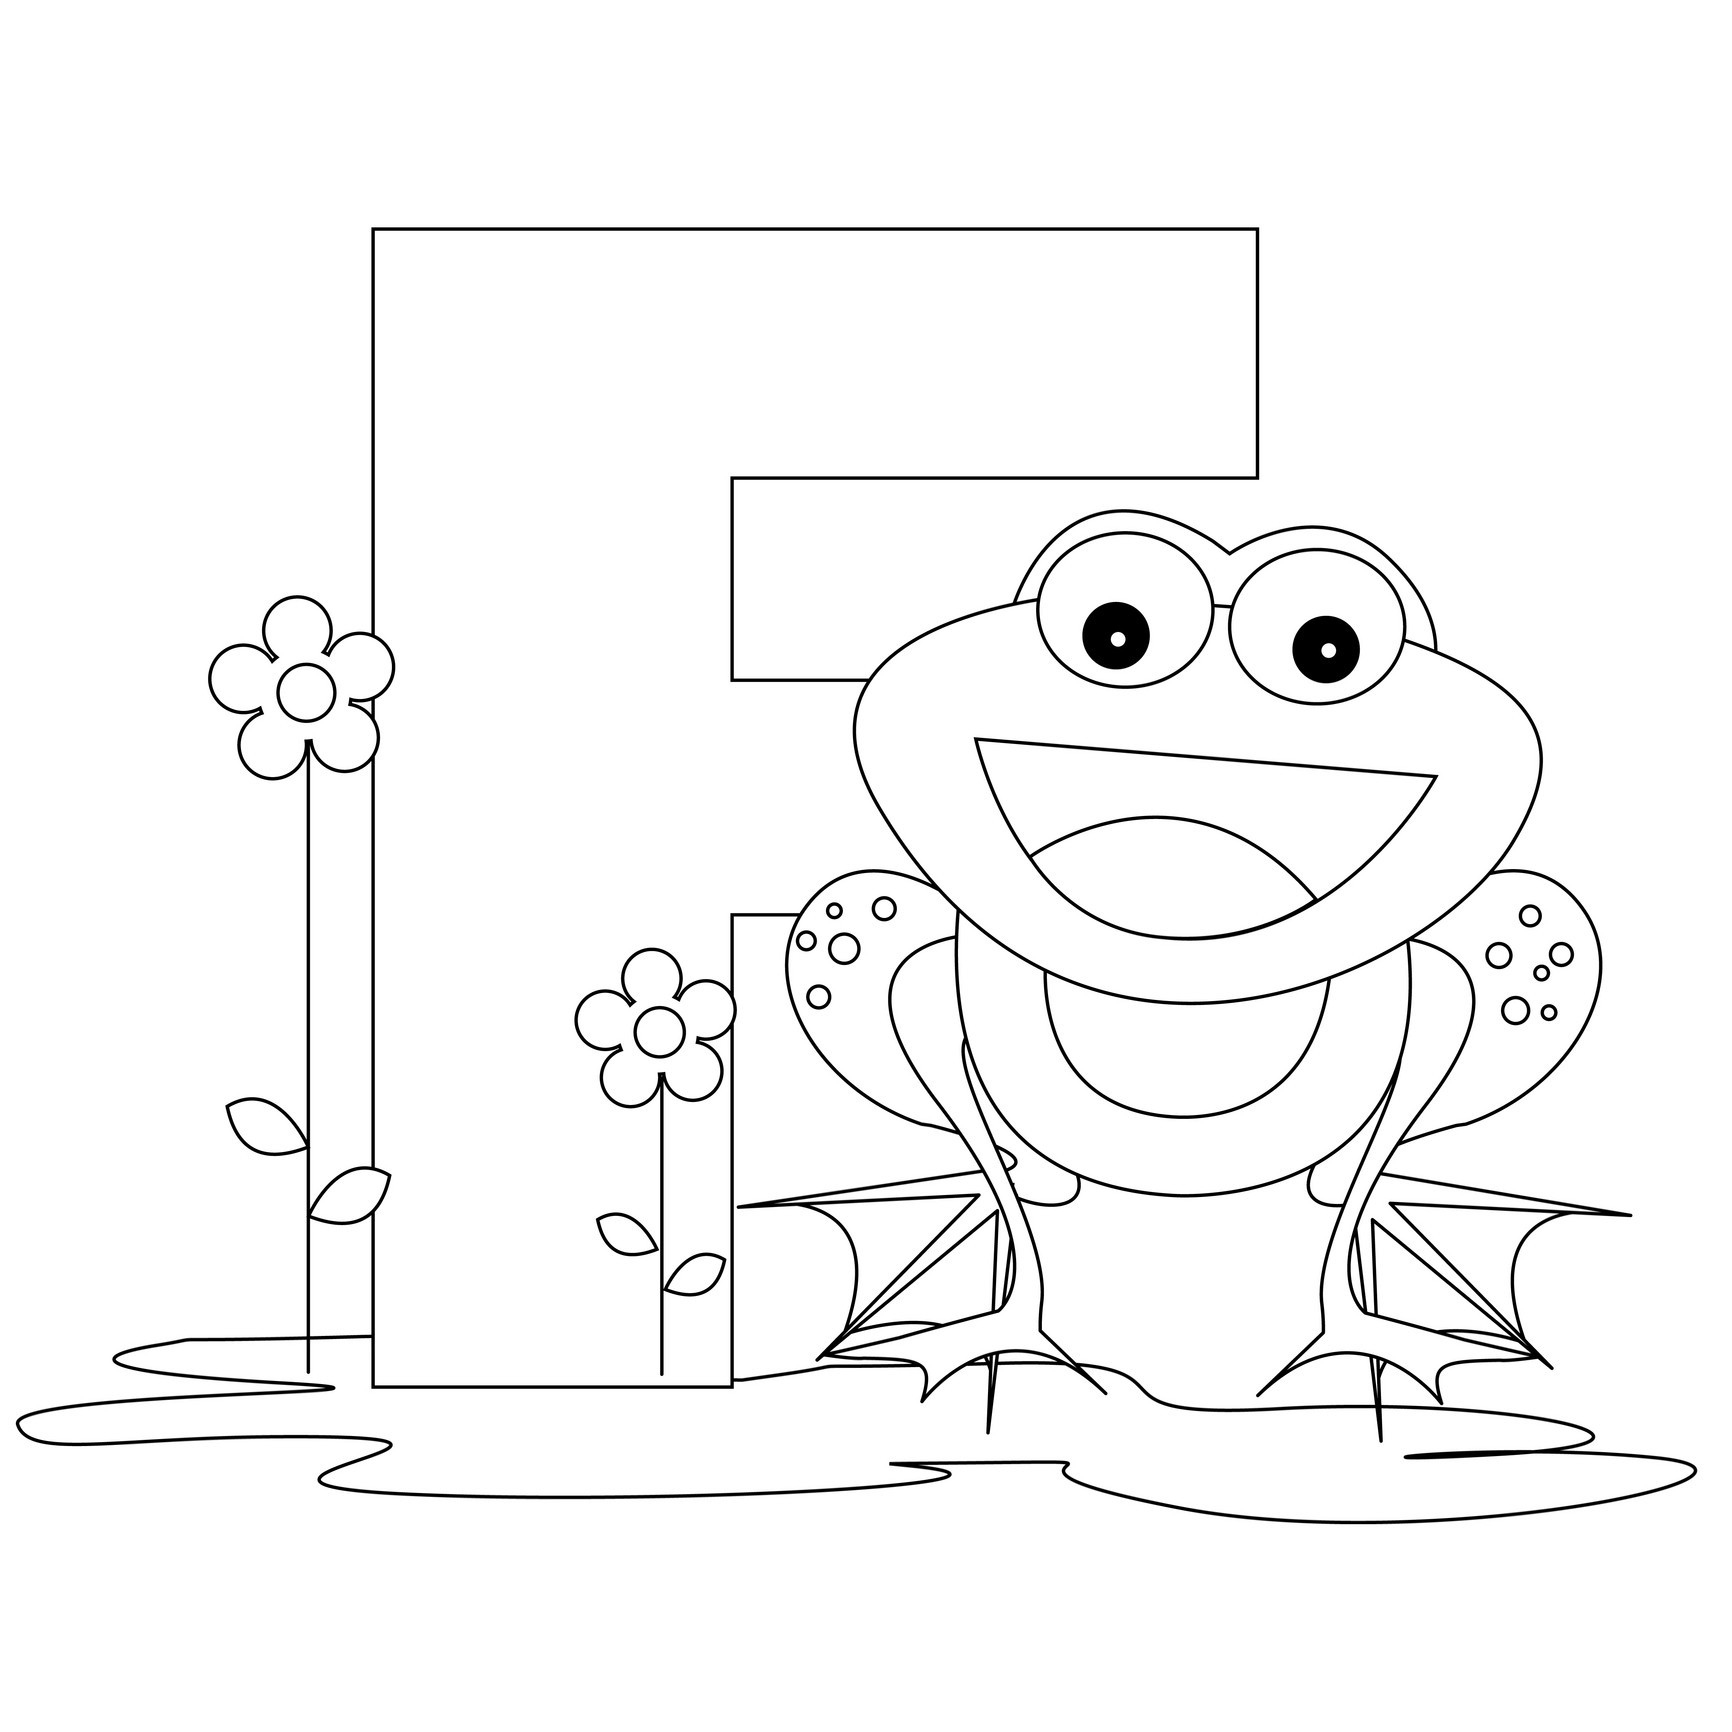 alphabet coloring pages for preschool - photo#28